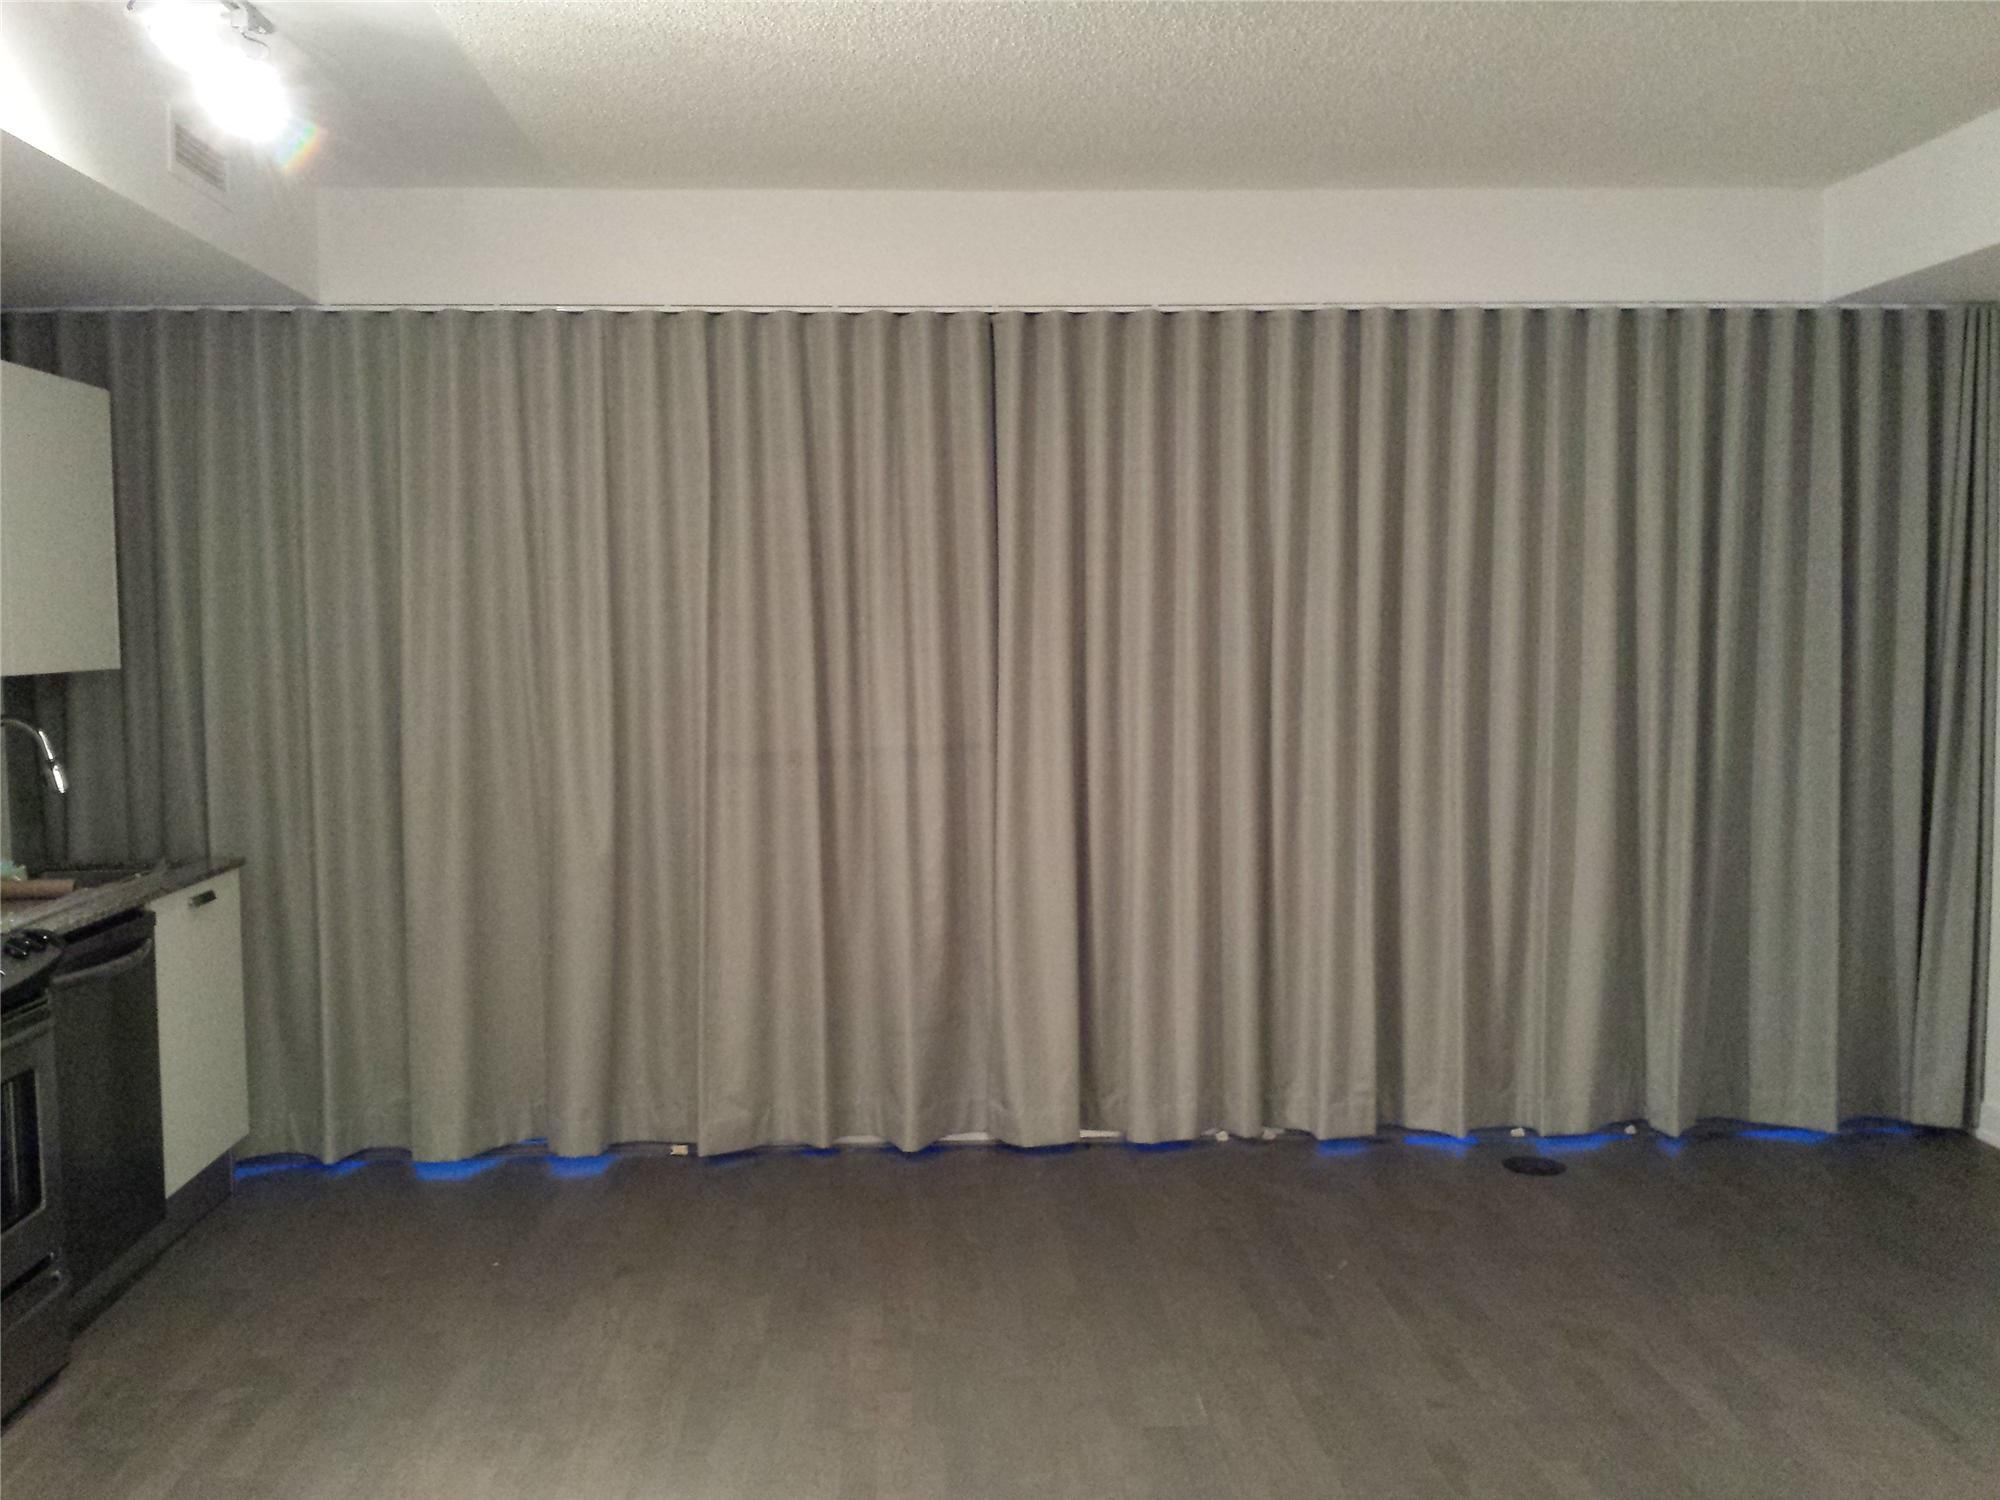 Gallery Ripple Fold Curtains Window Treatment Ideas